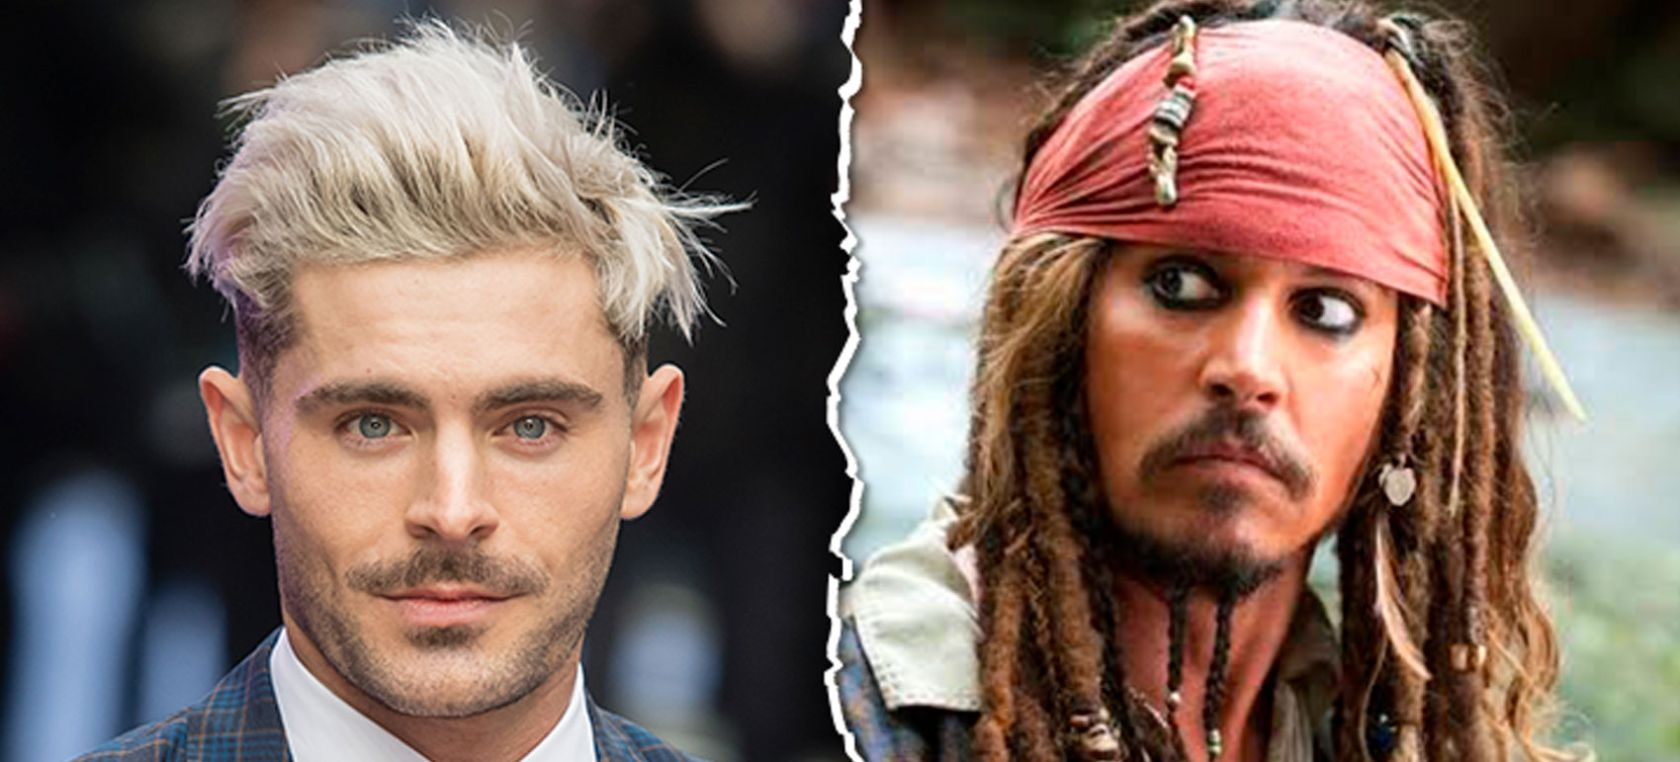 Image result for jacksparrow zac efron